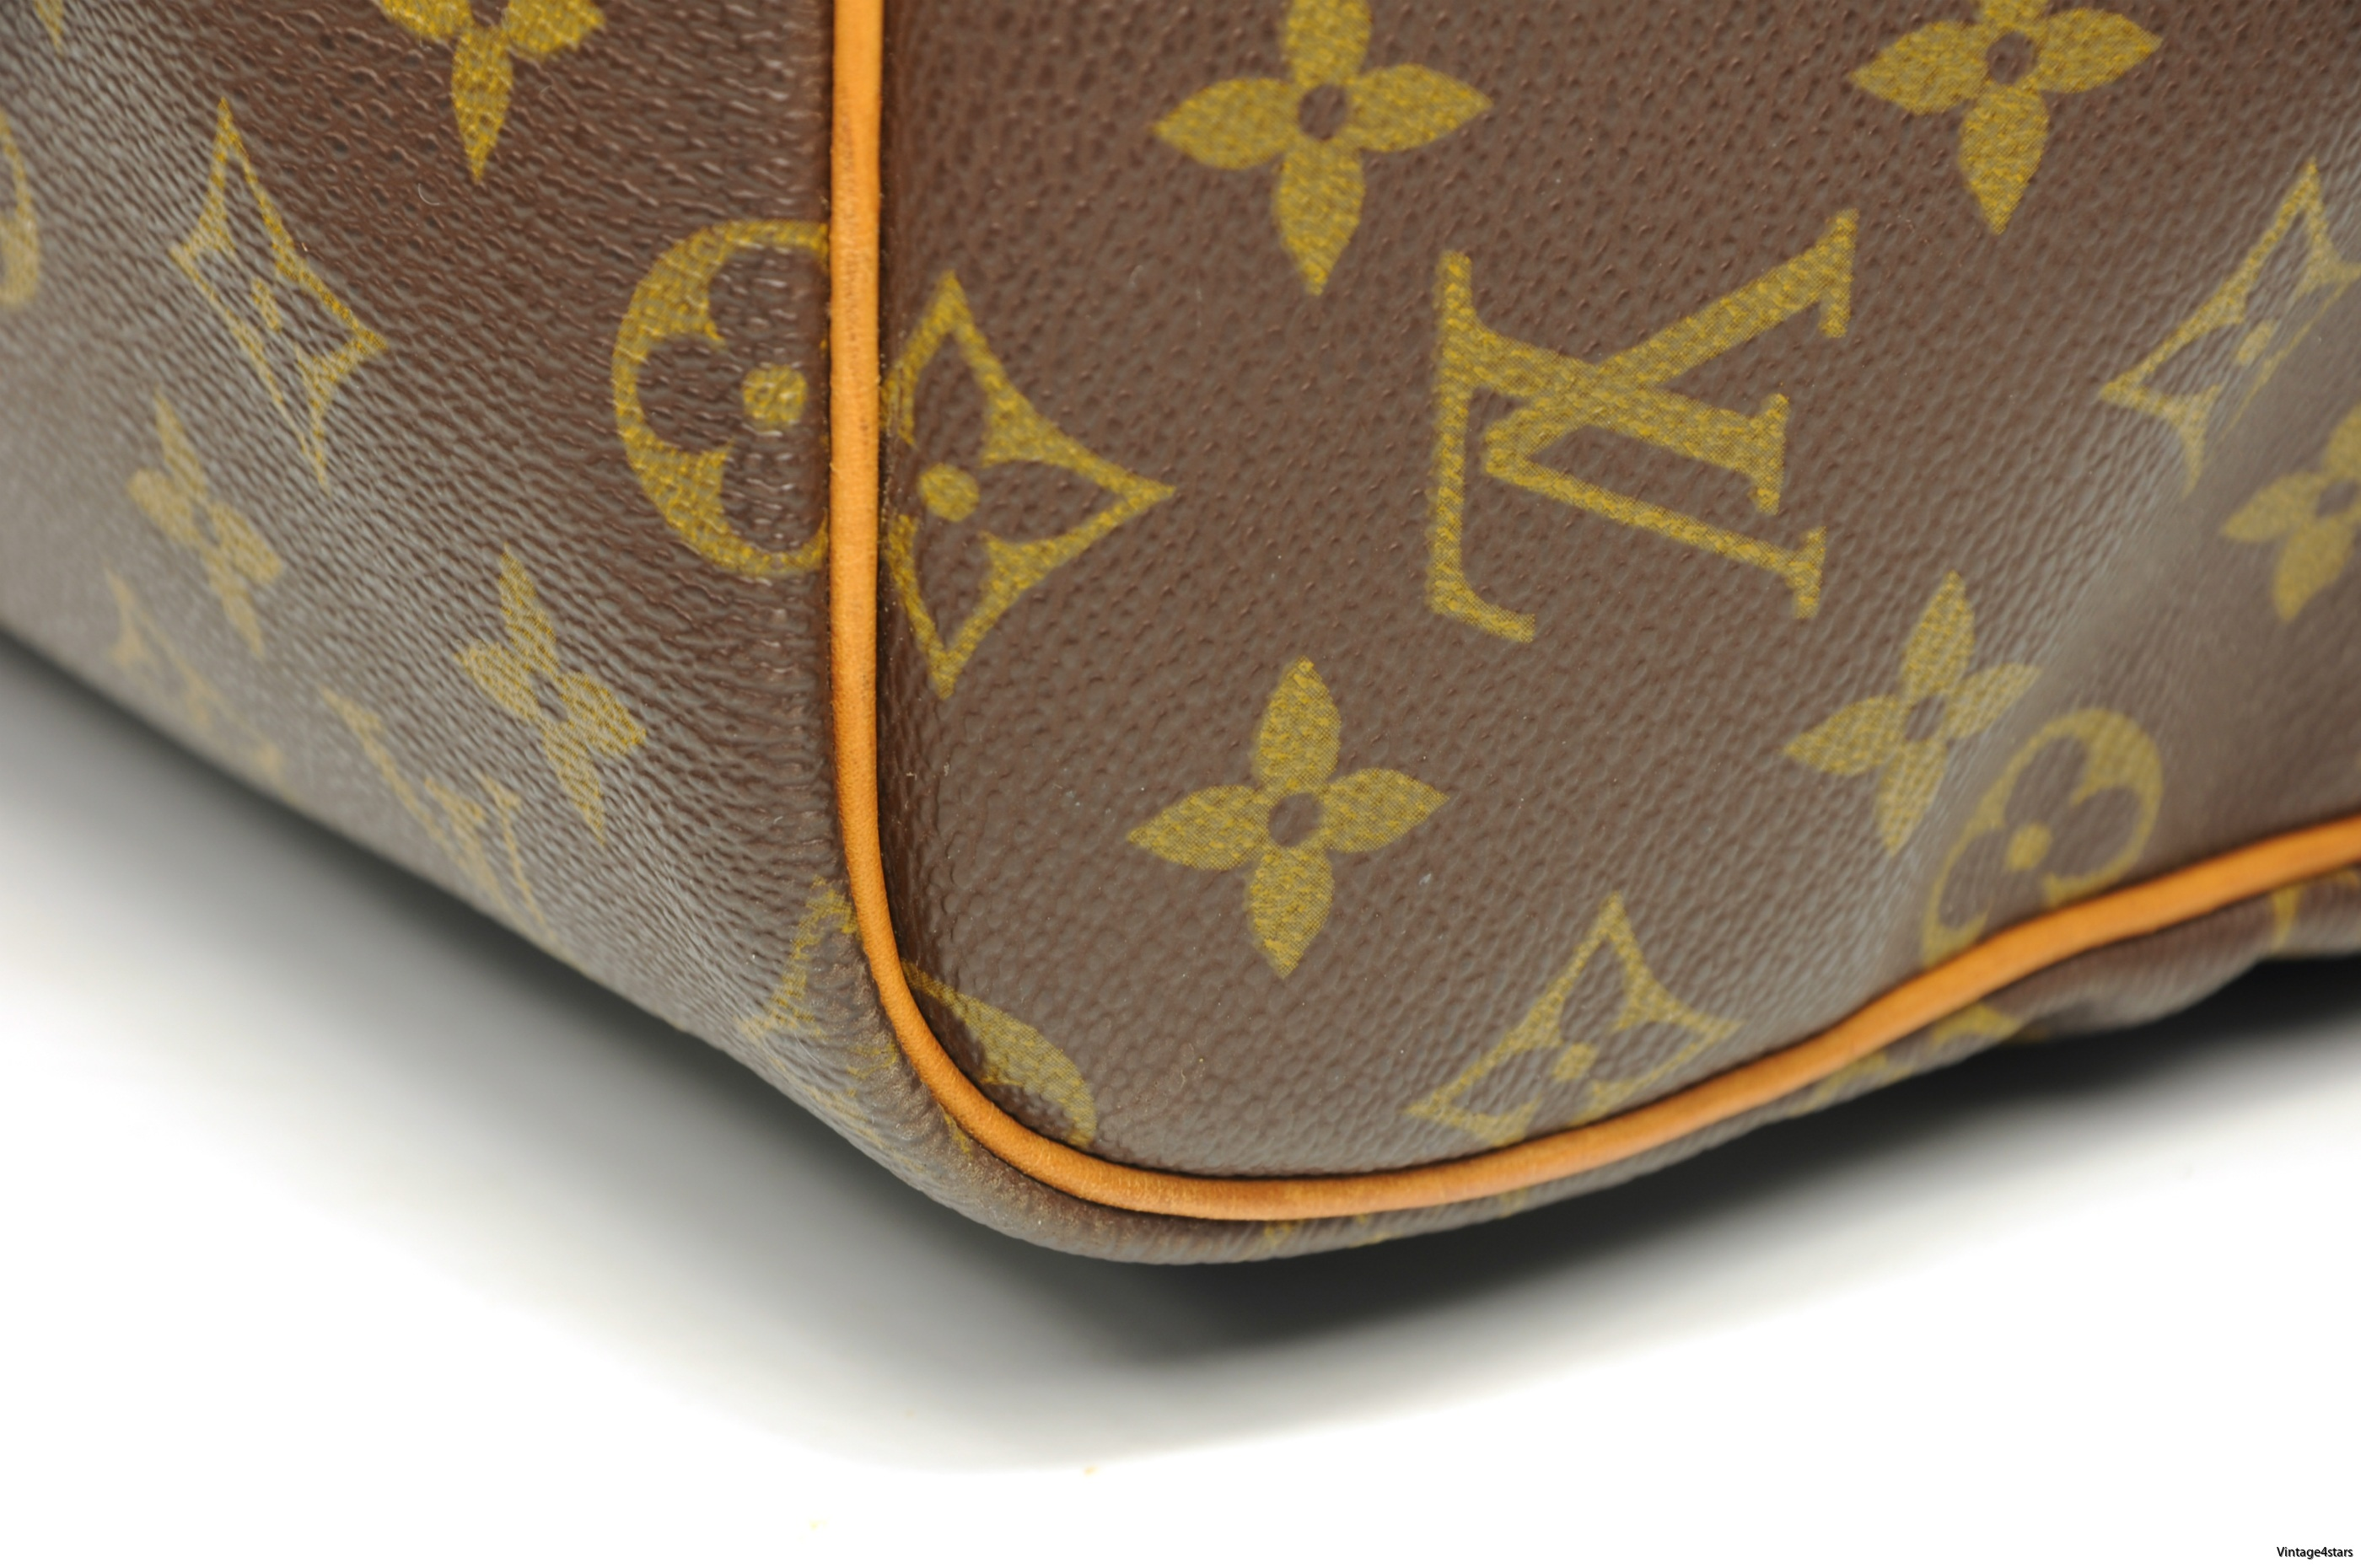 Louis Vuitton Keepall 55 Bandouliere 204